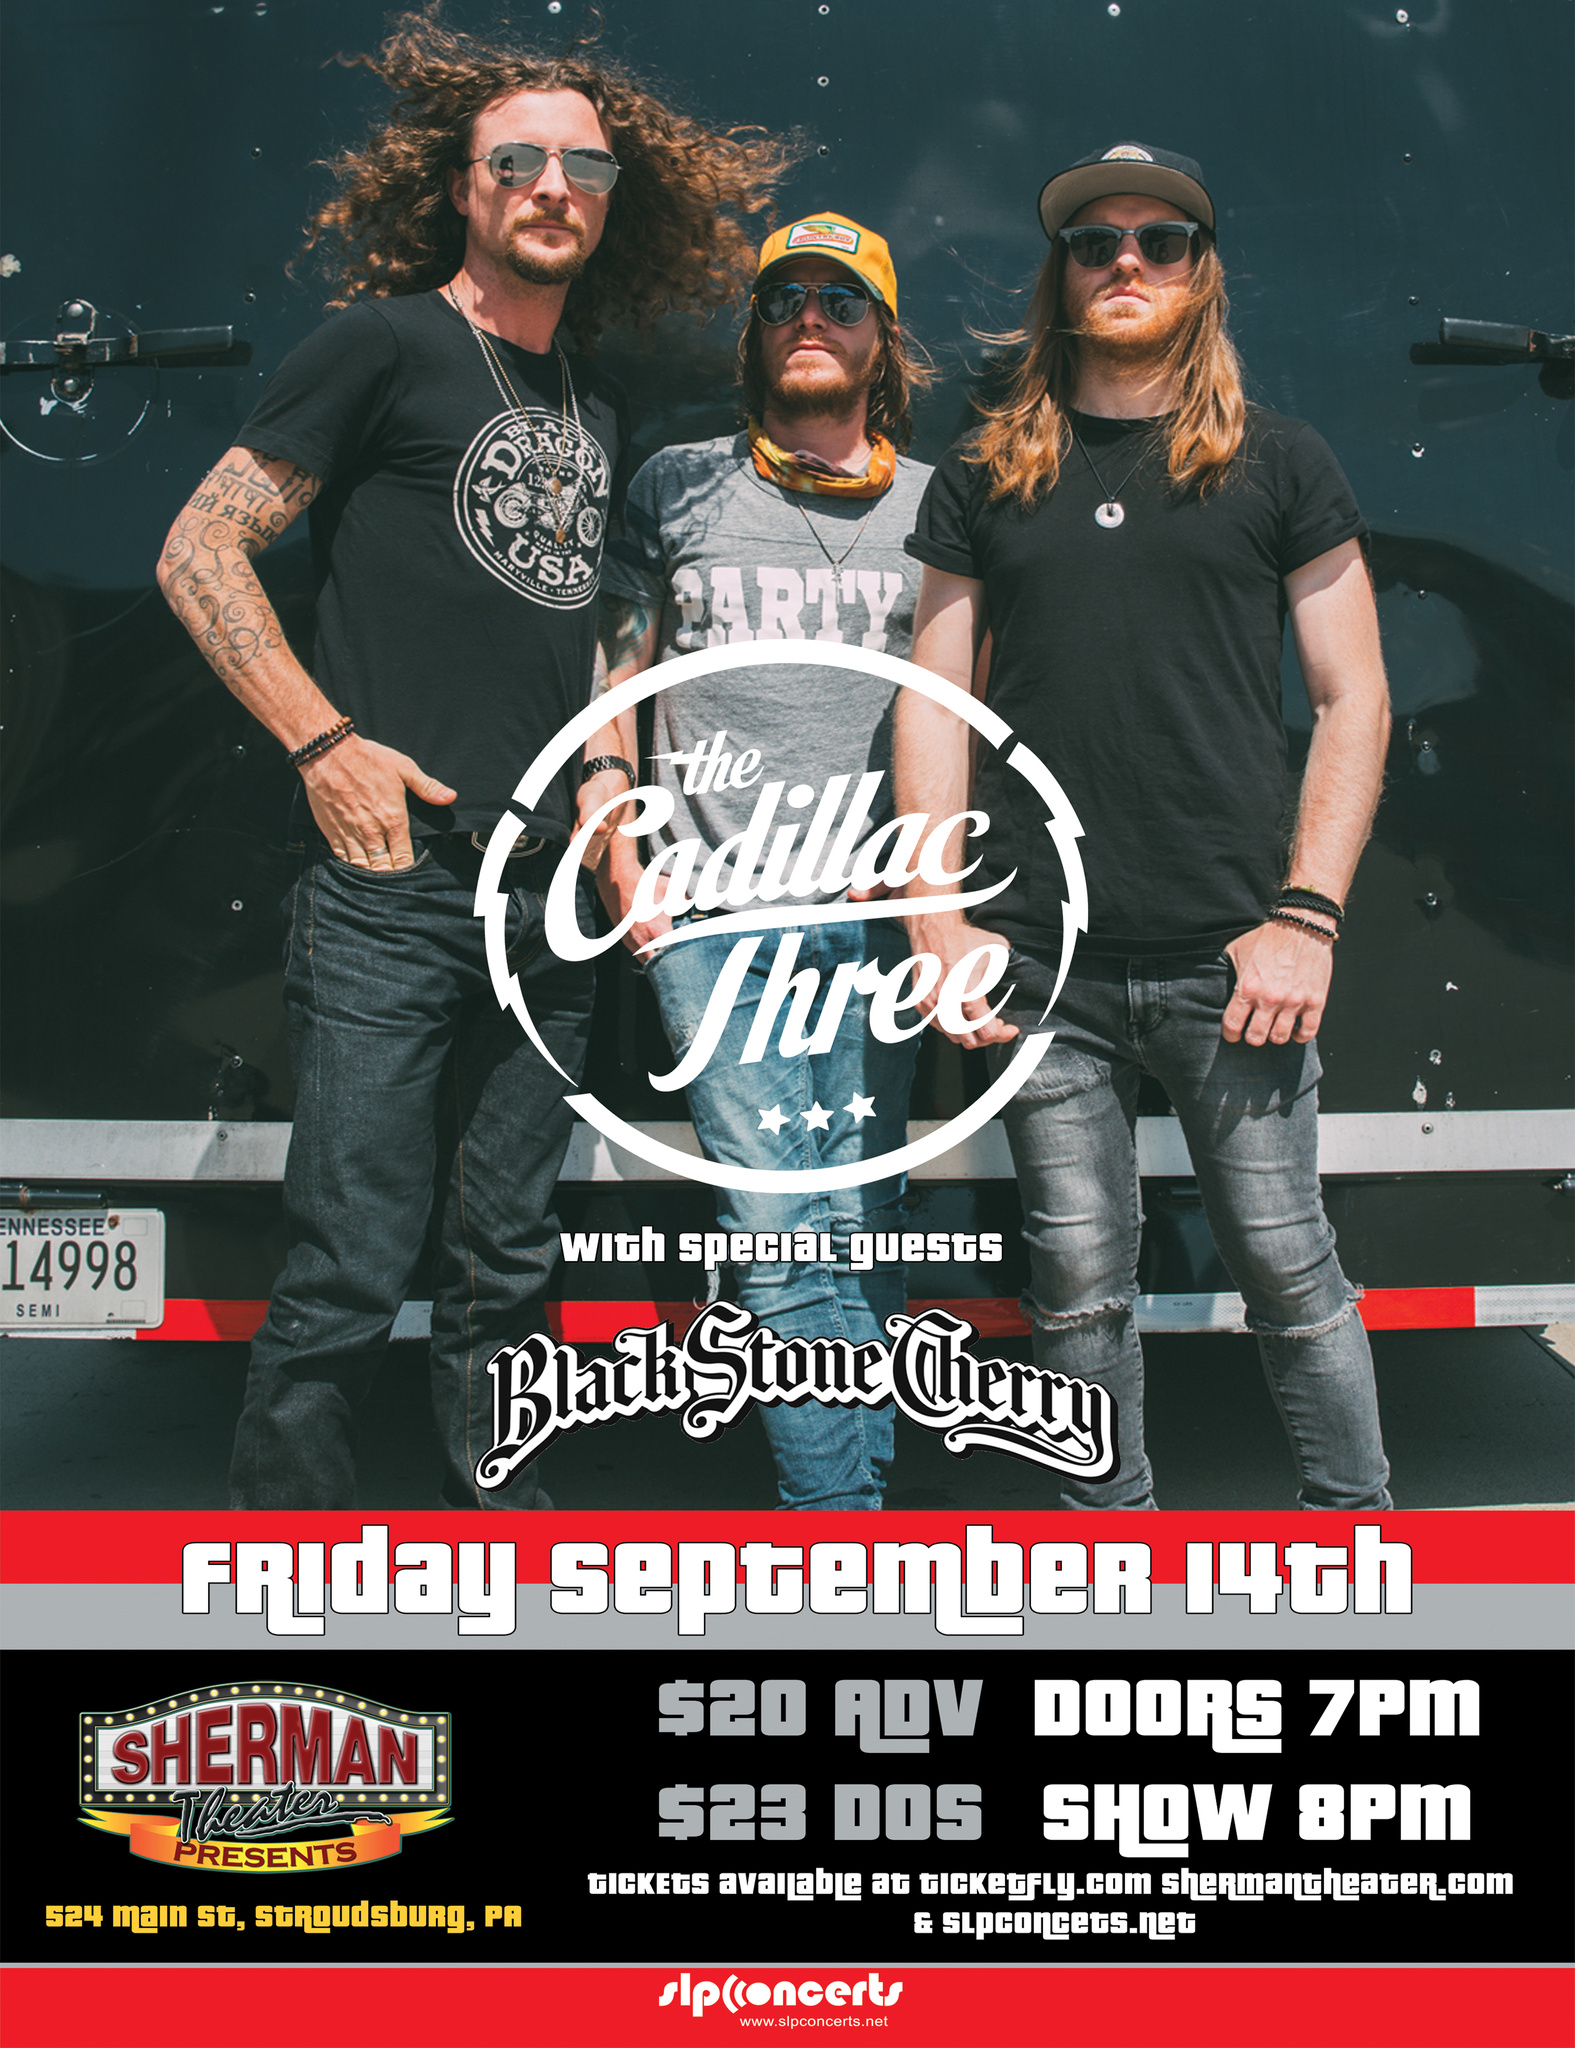 image for event The Cadillac Three and Black Stone Cherry